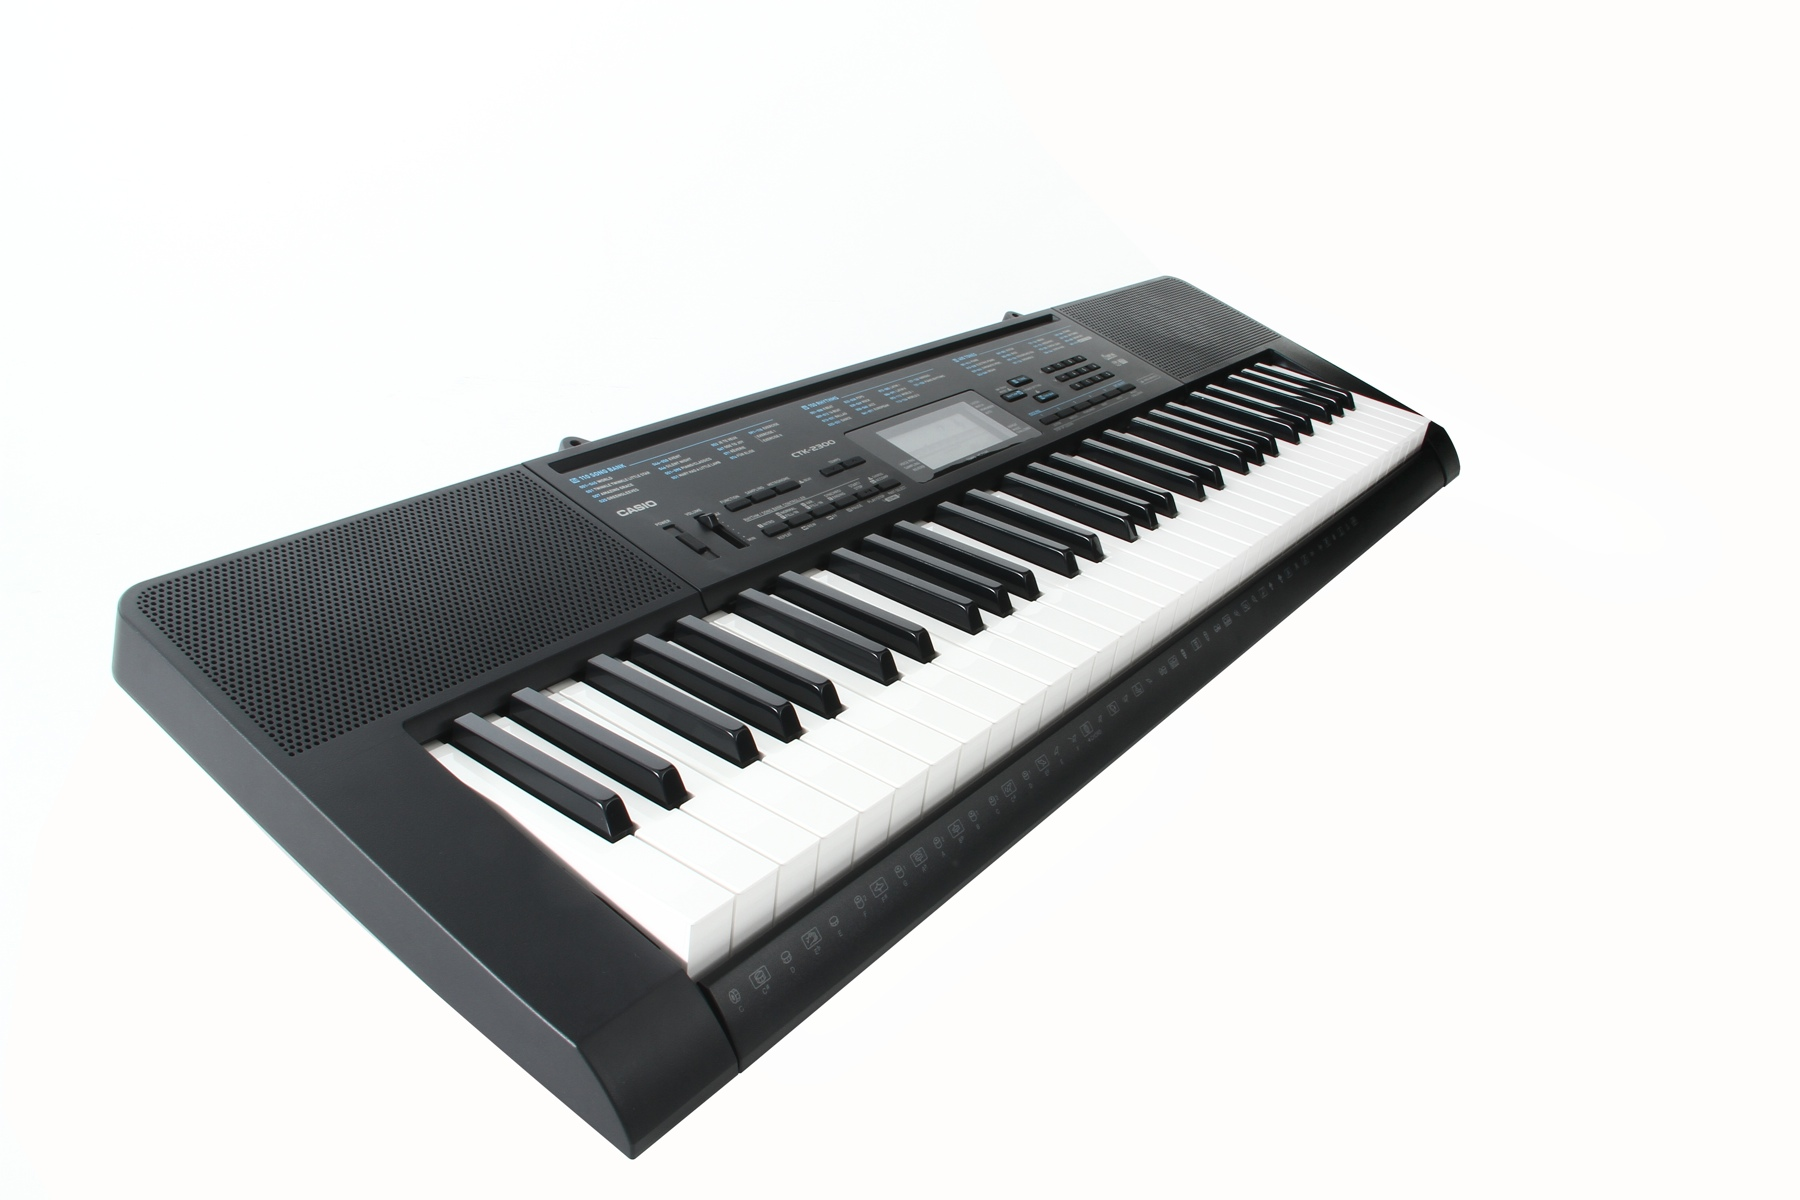 http://www.danorgan.com.vn/upload/images_products/large/Dan-organ-casio-CTK-2300-.jpg